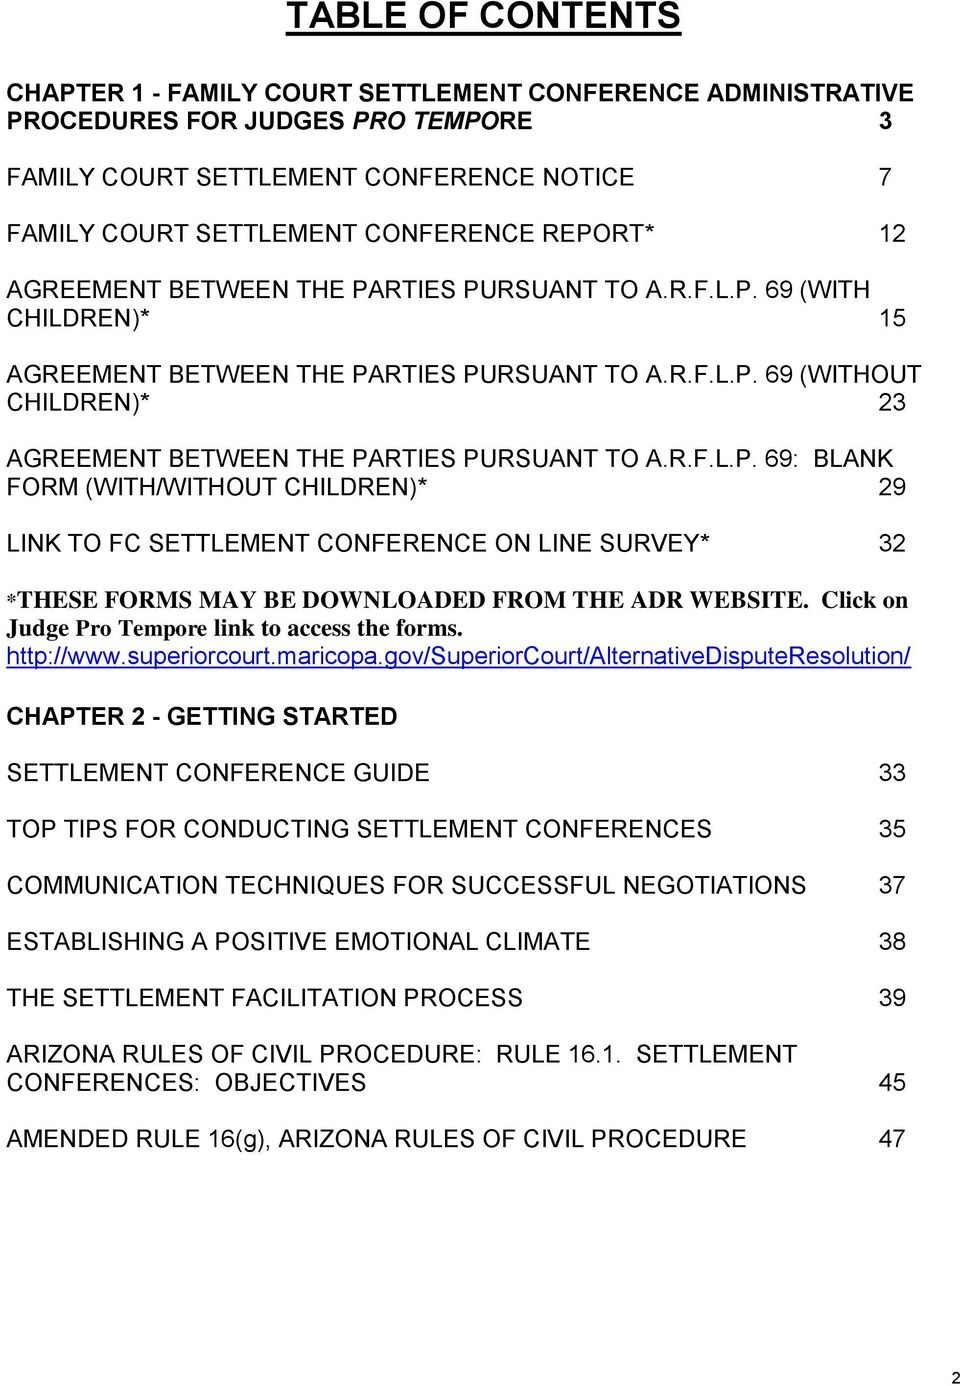 Family Court Settlement Conference Training Manual Pdf